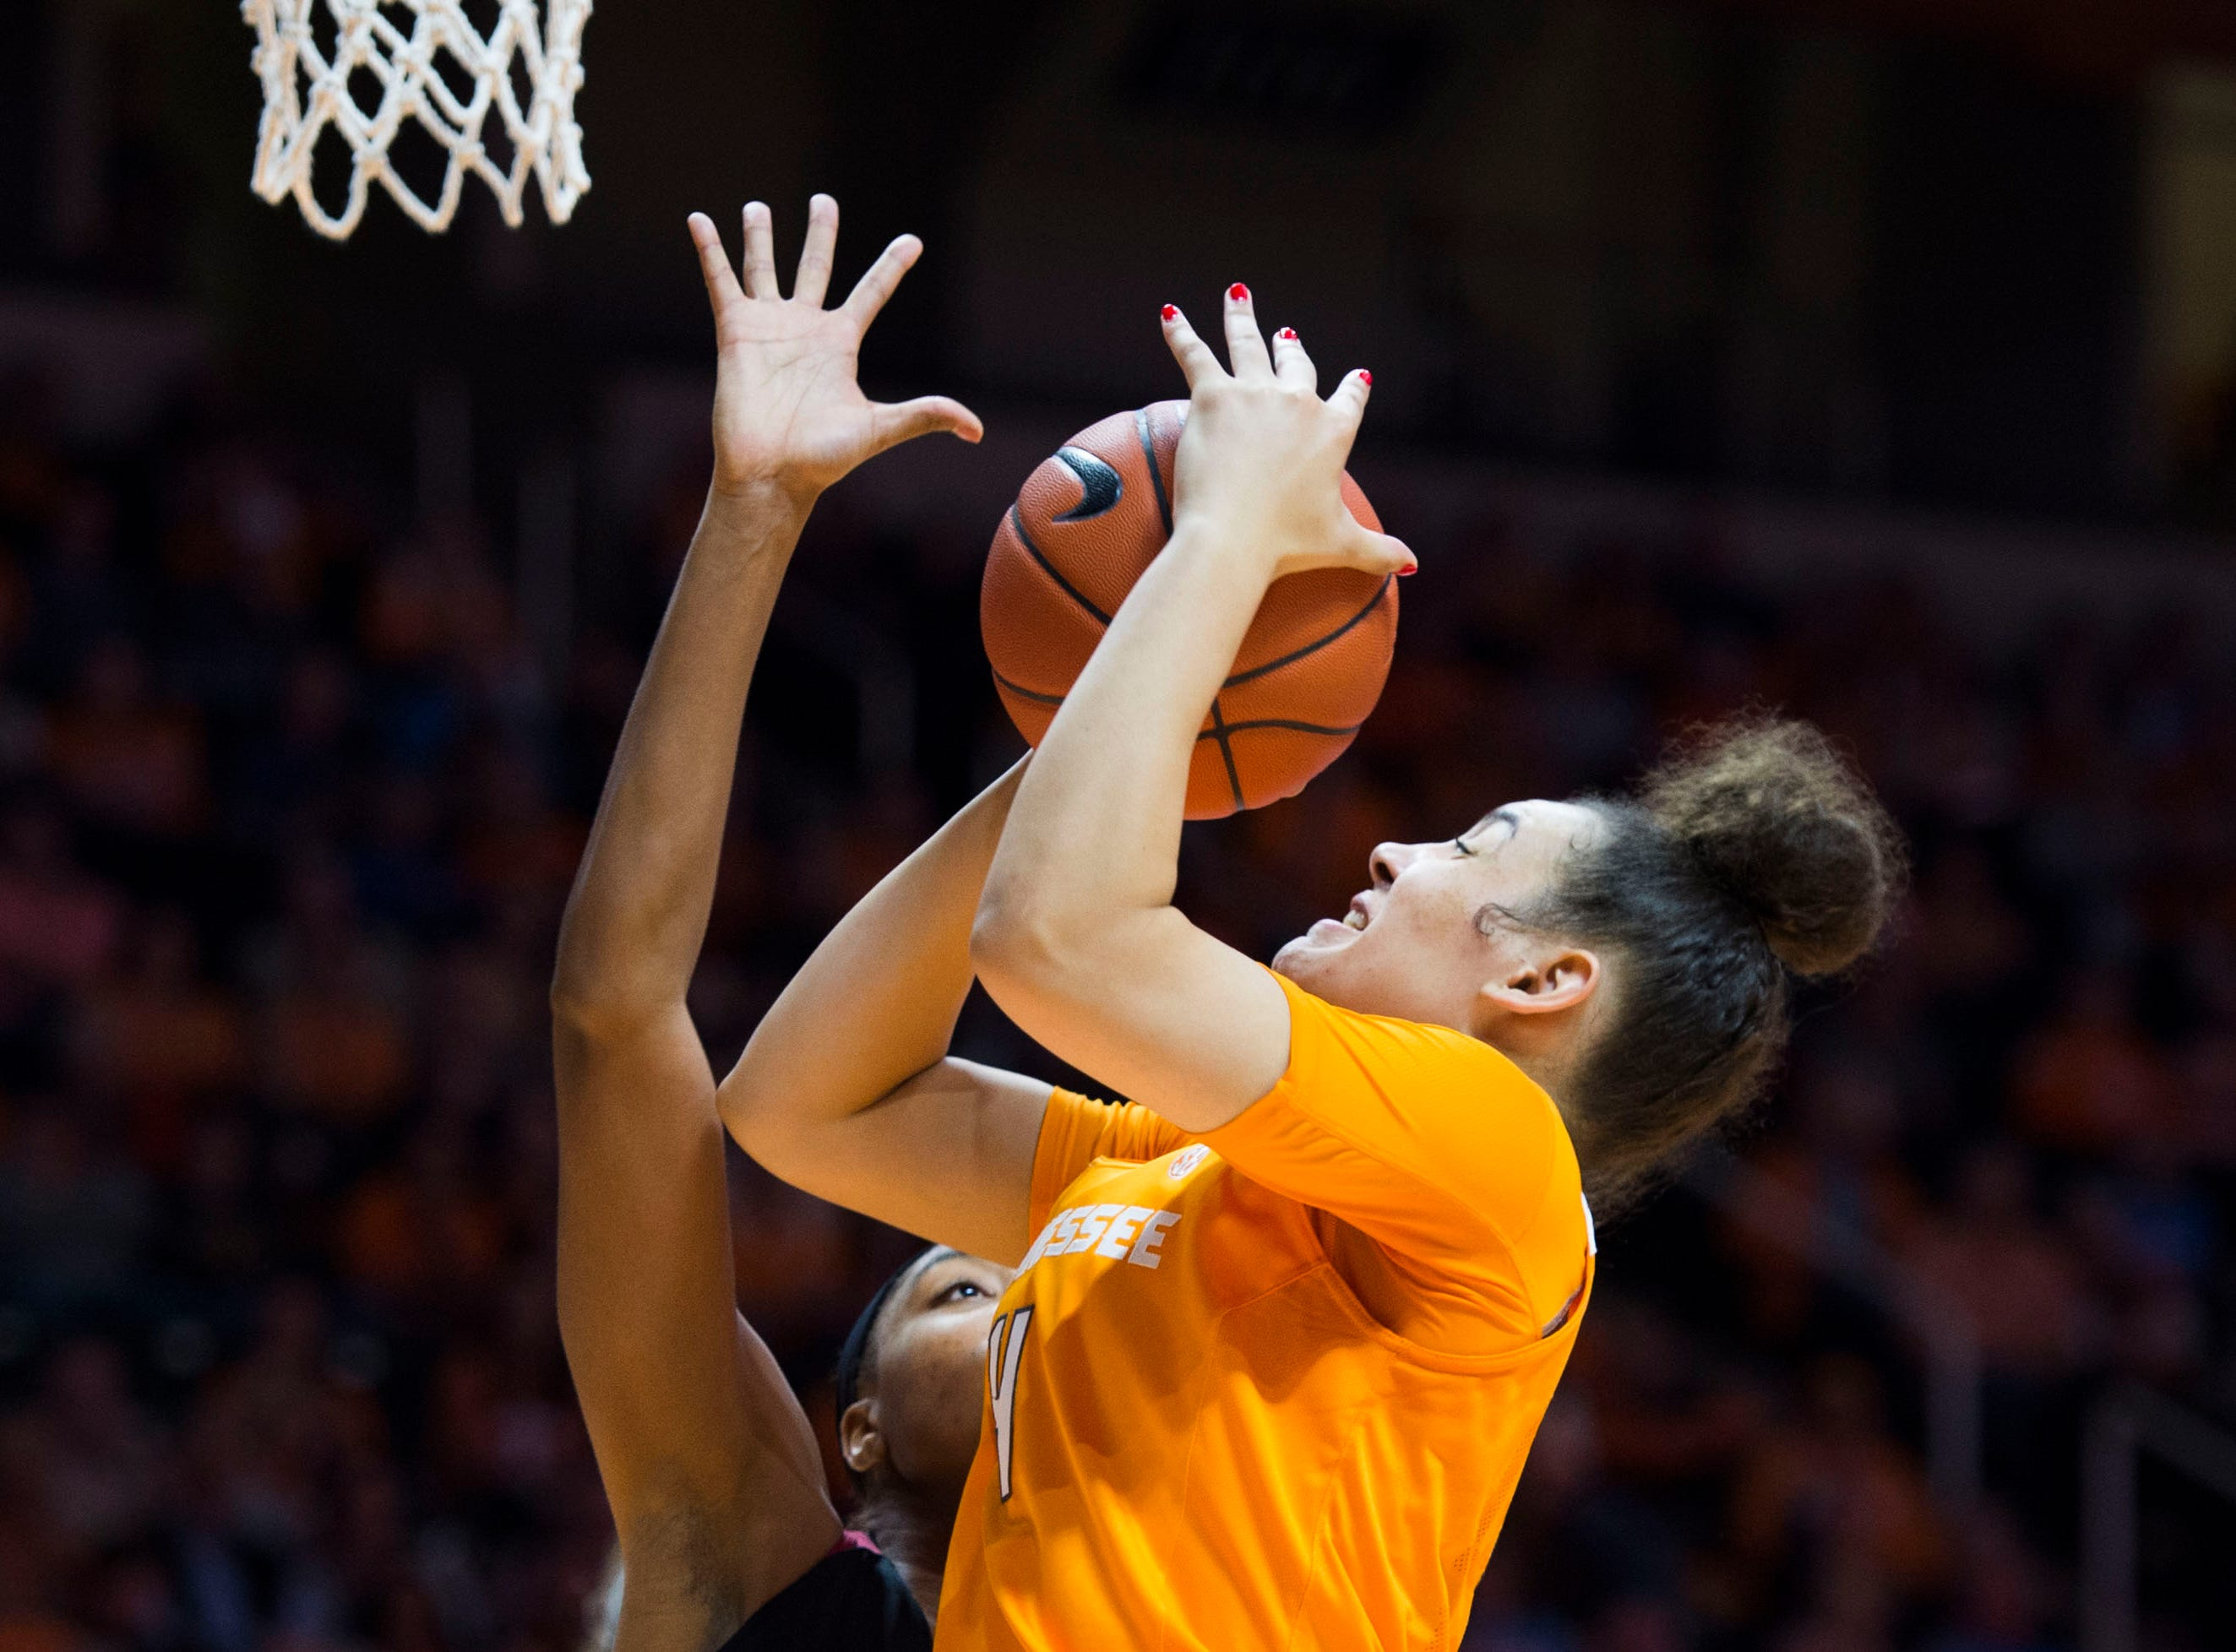 Tennessee's Mimi Collins (4) takes a shot during a women's basketball game between Tennessee and Stanford at Thompson-Boling Arena Tuesday, Dec. 18, 2018.